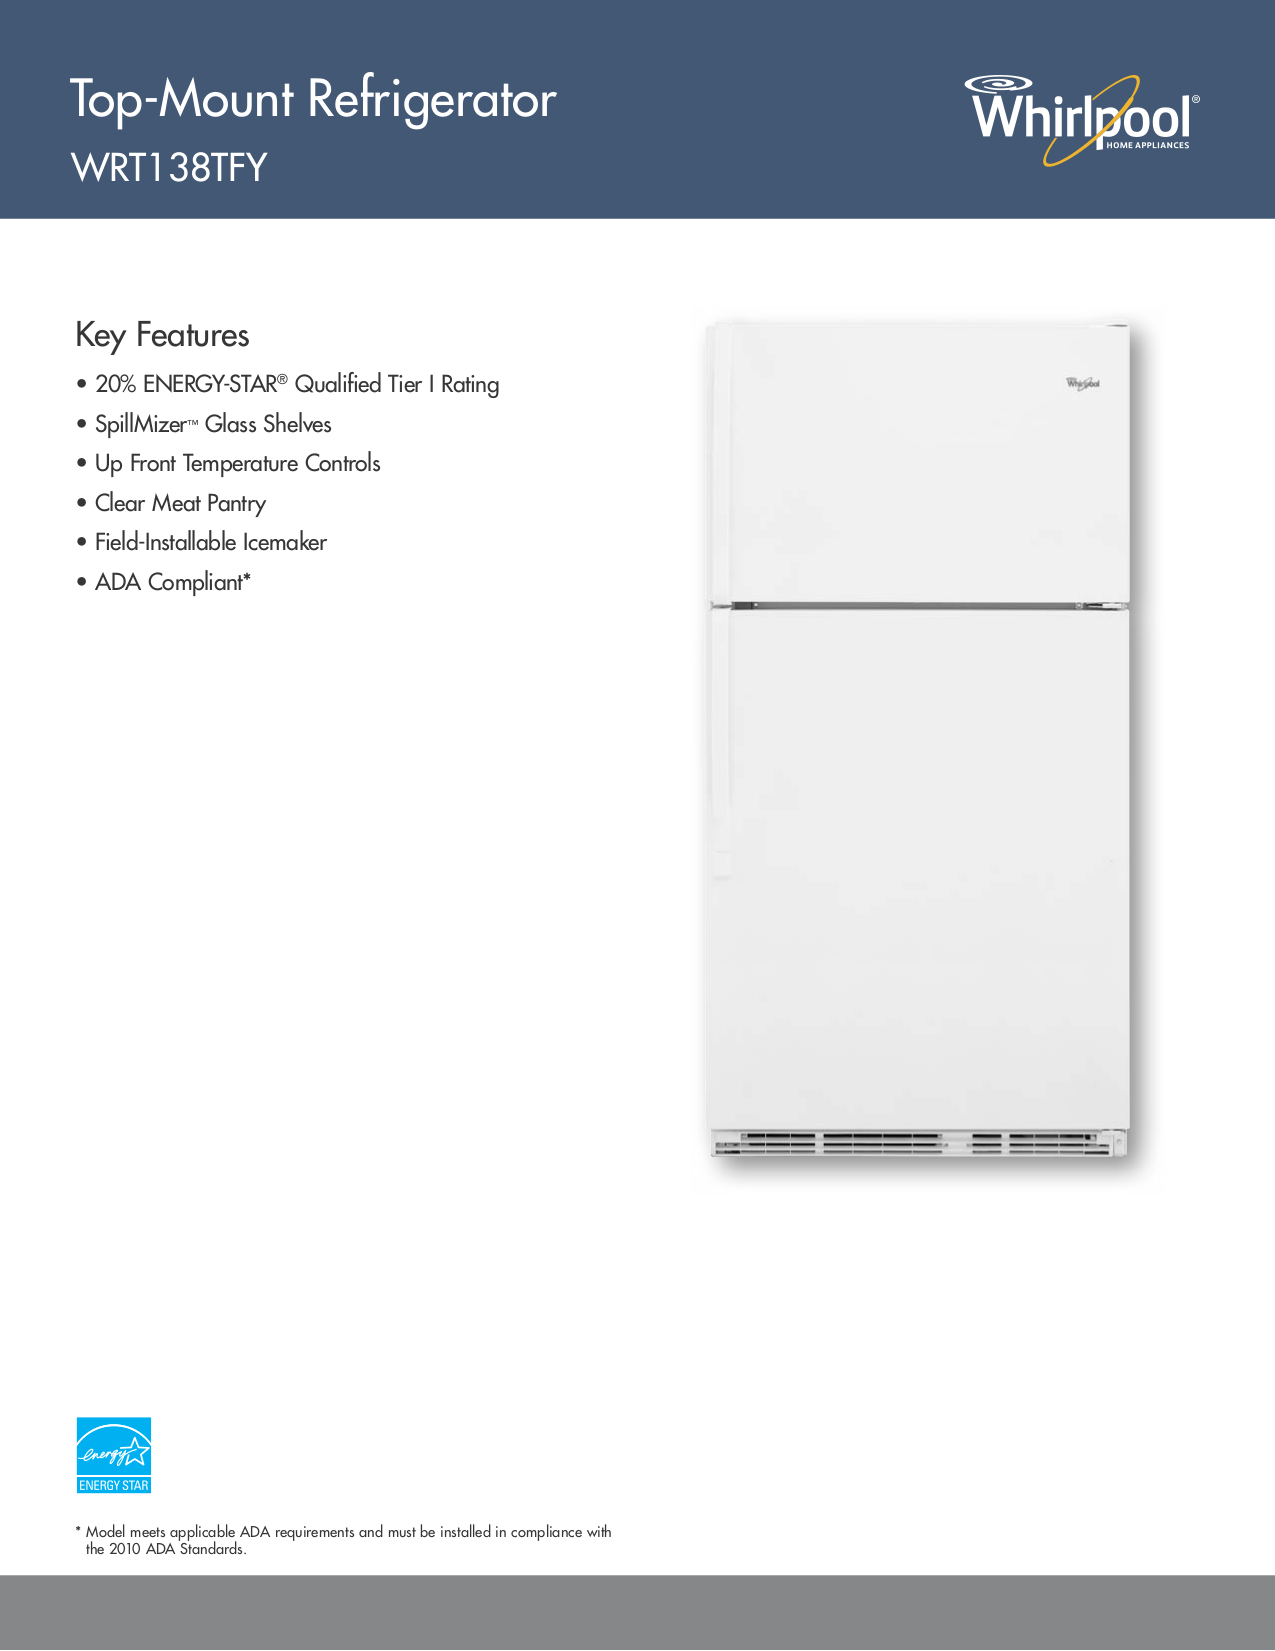 Whirlpool Refrigerator Manual Pdf